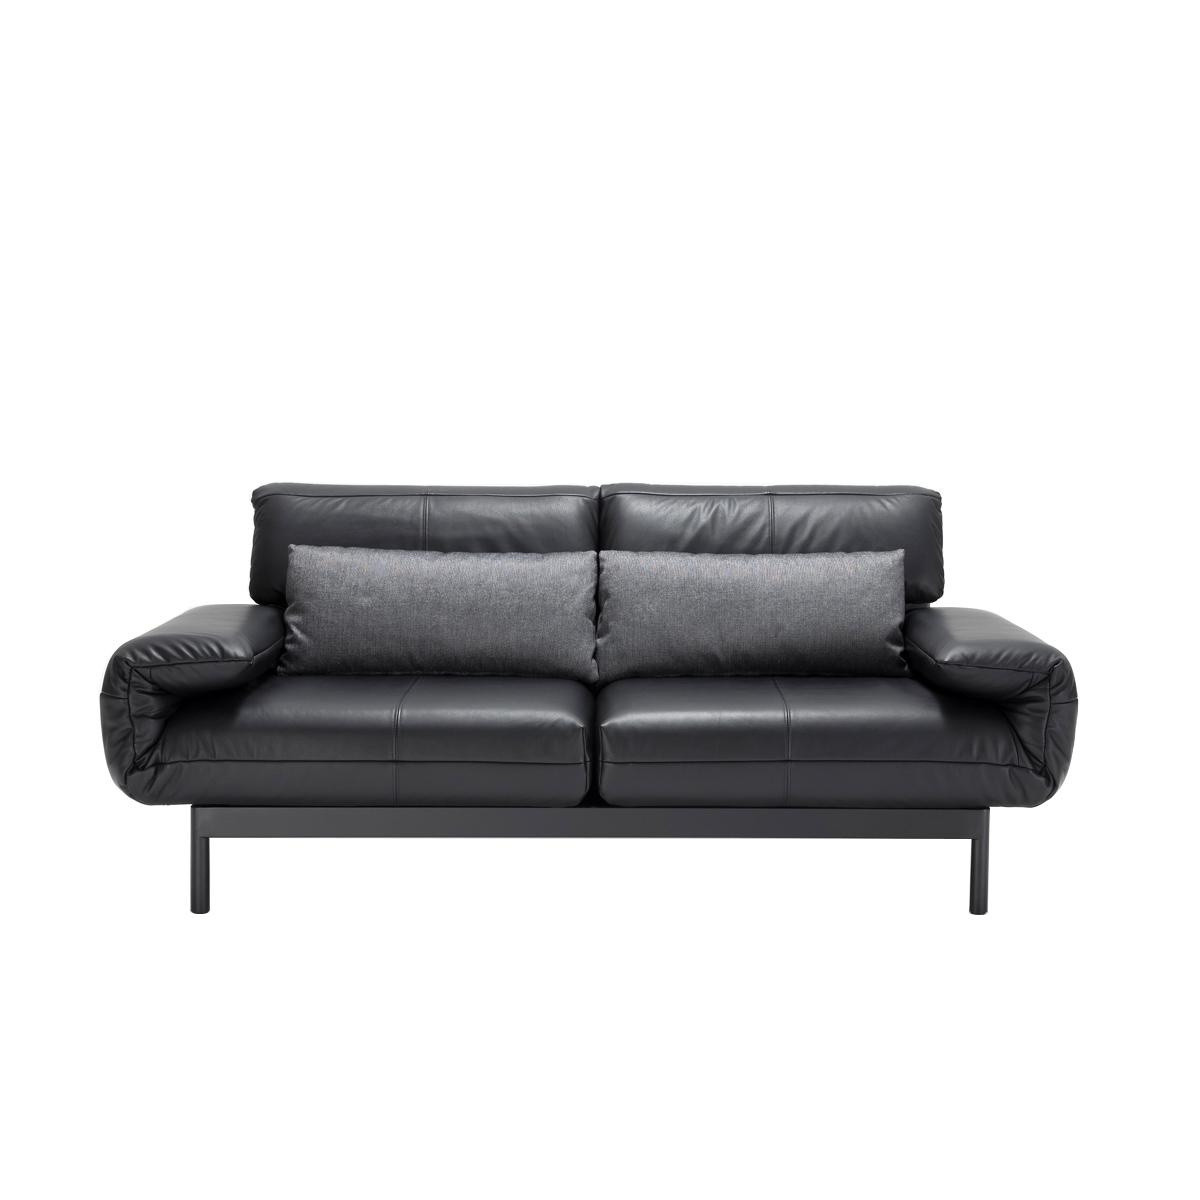 rolf benz zweisitzer rolf benz designer sofa leder gr n zweisitzer couch modern echtleder 3520. Black Bedroom Furniture Sets. Home Design Ideas